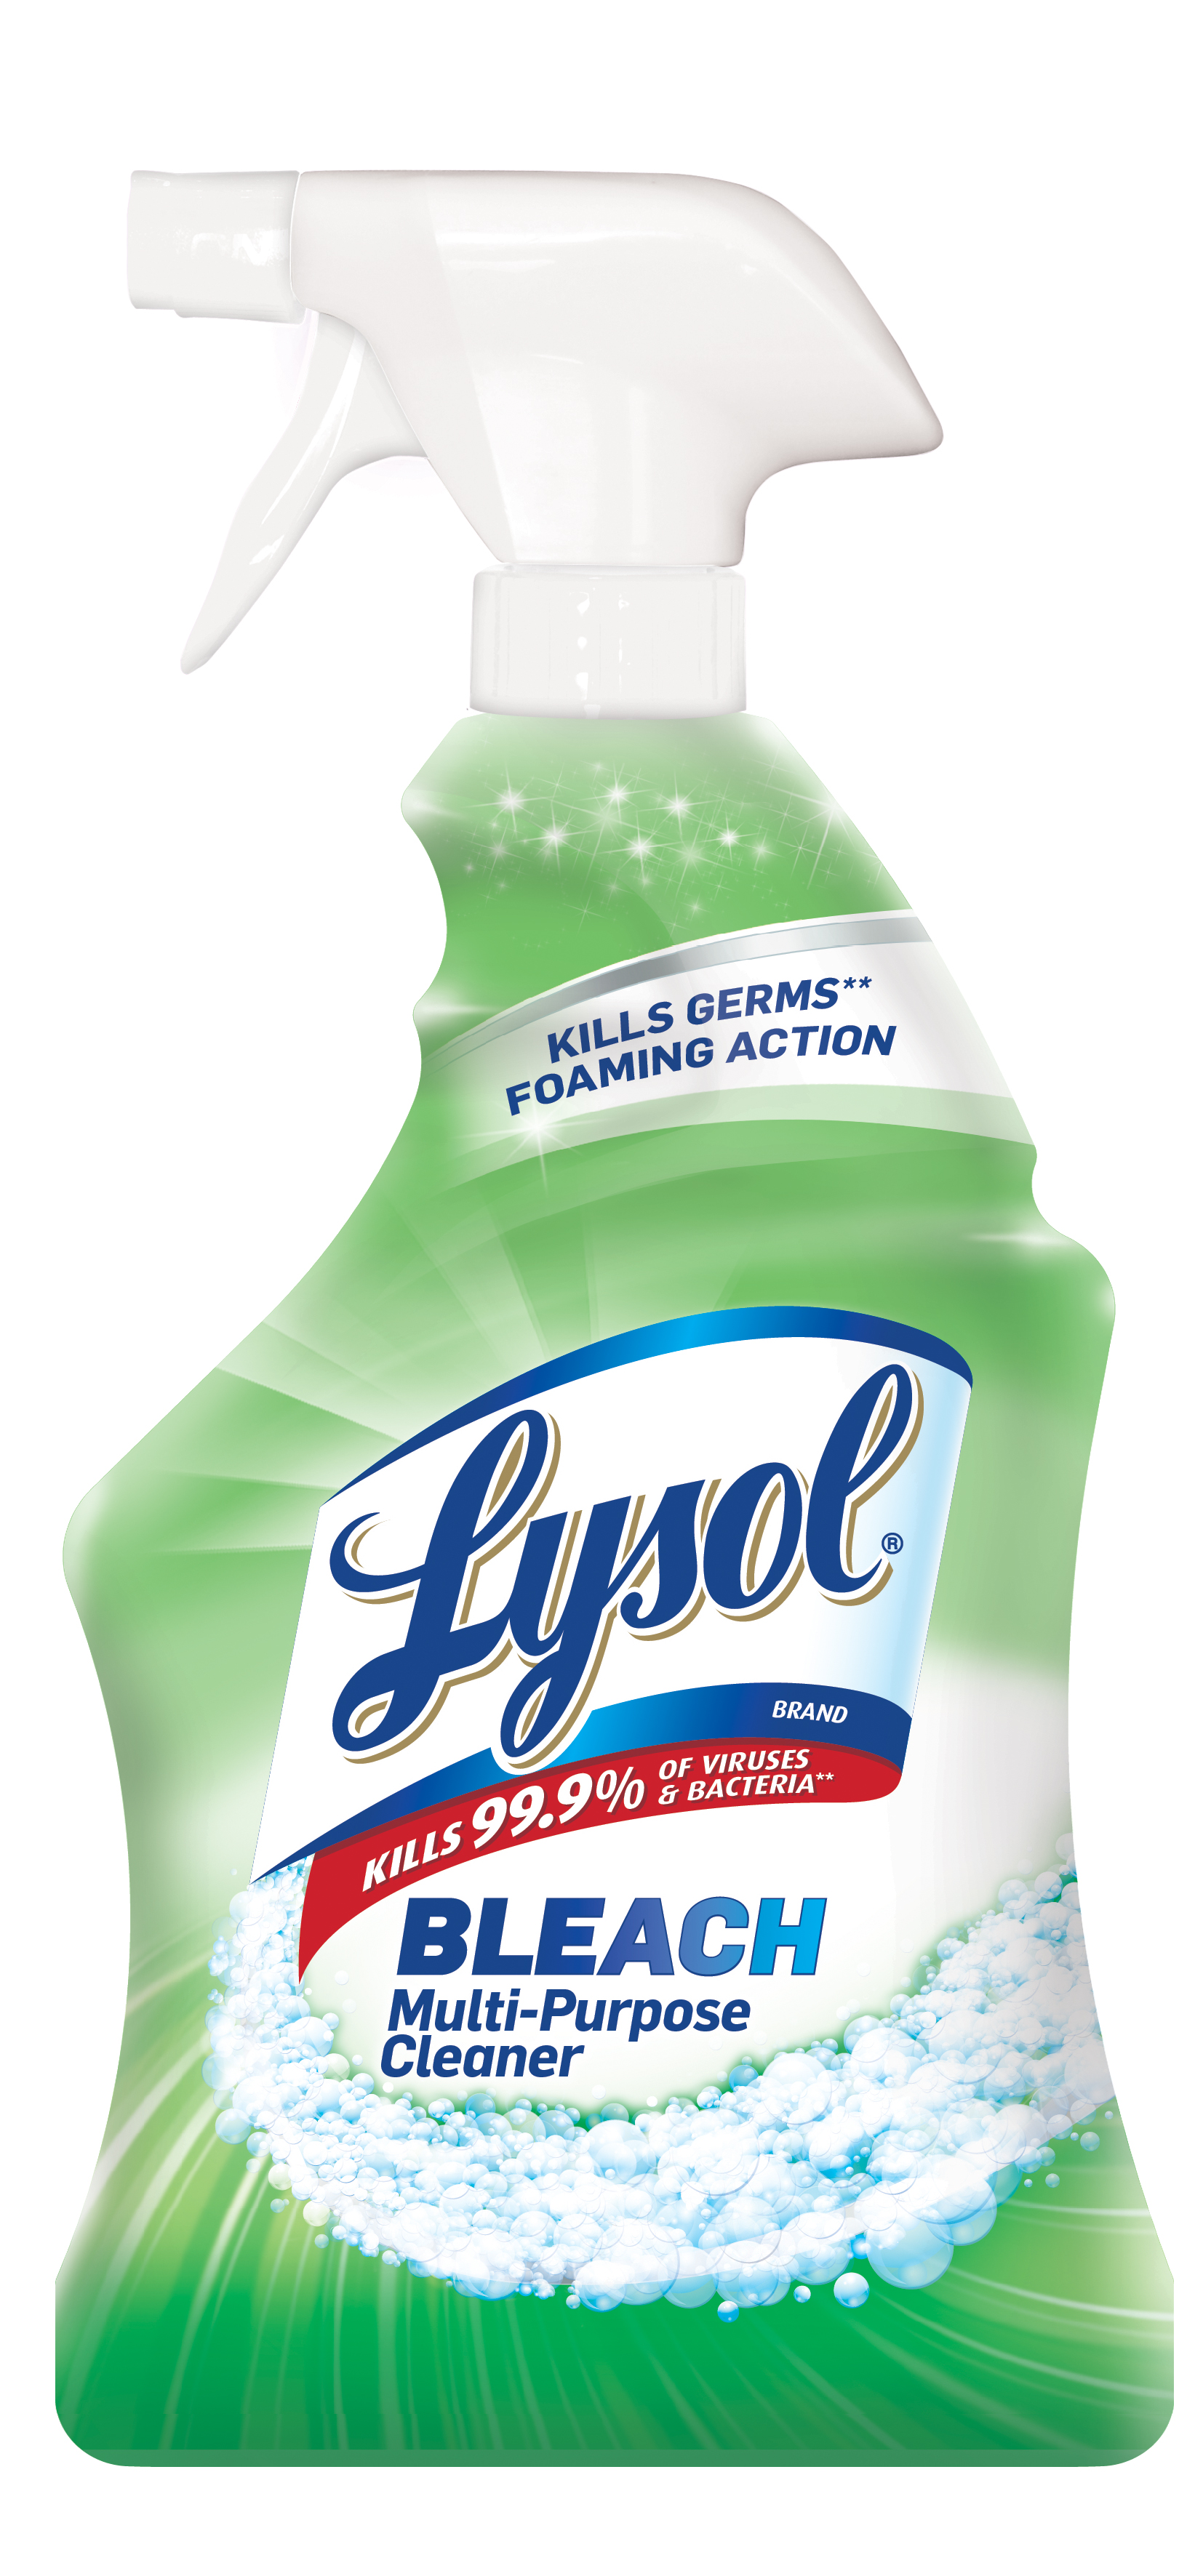 LYSOL® Bleach Multi-Purpose Cleaner